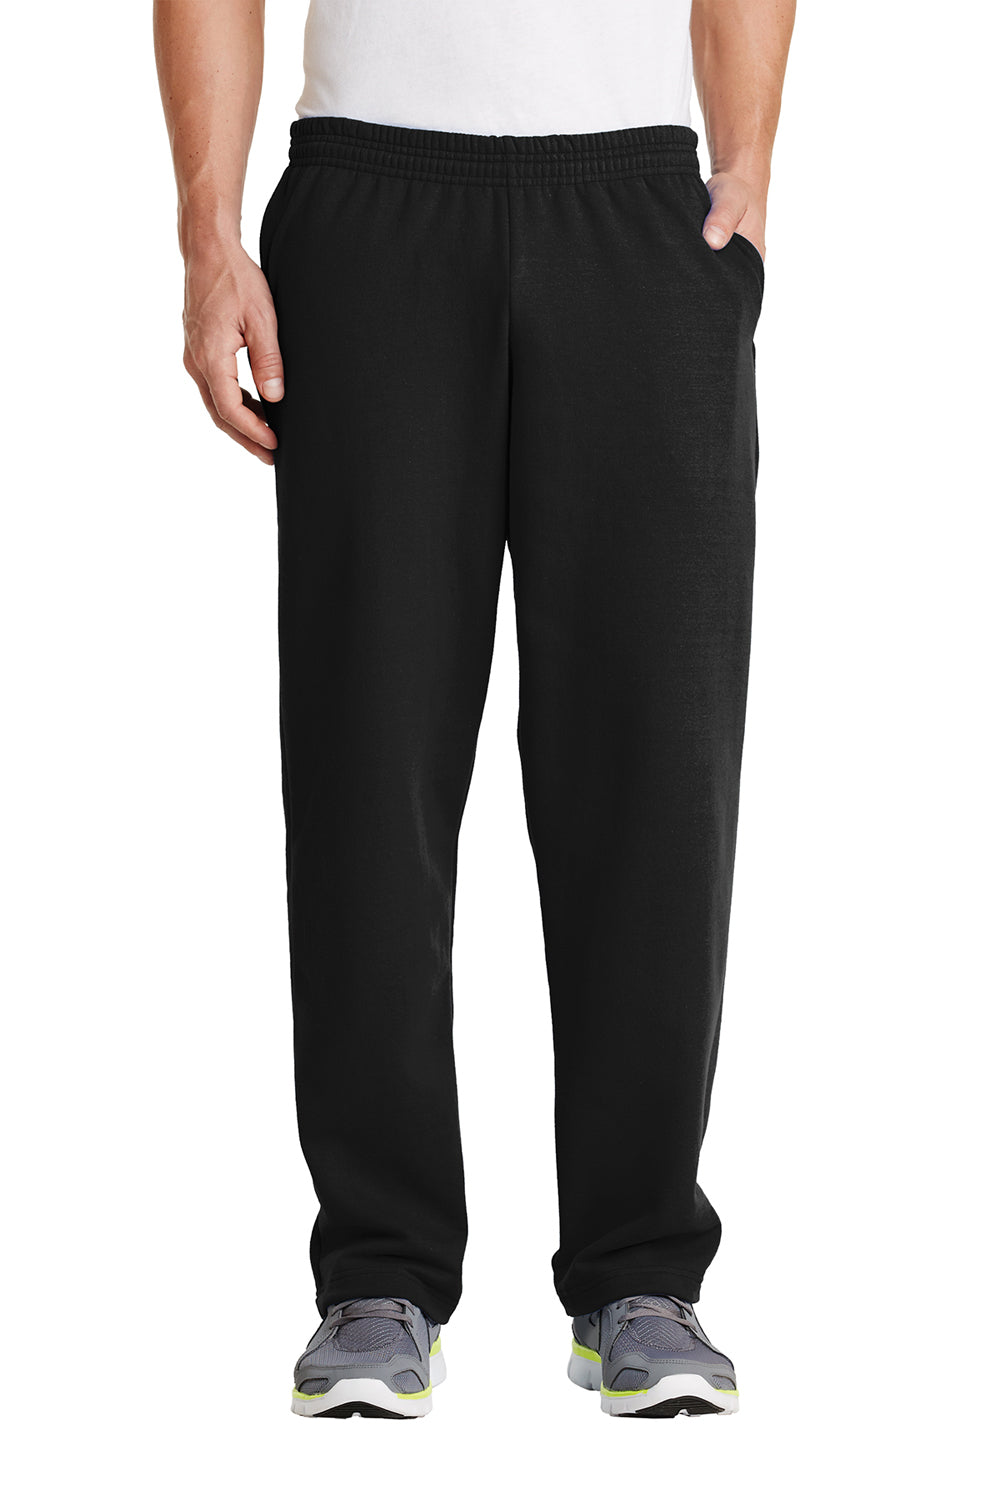 Port & Company PC78P Mens Core Fleece Open Bottom Sweatpants w/ Pockets Black Front